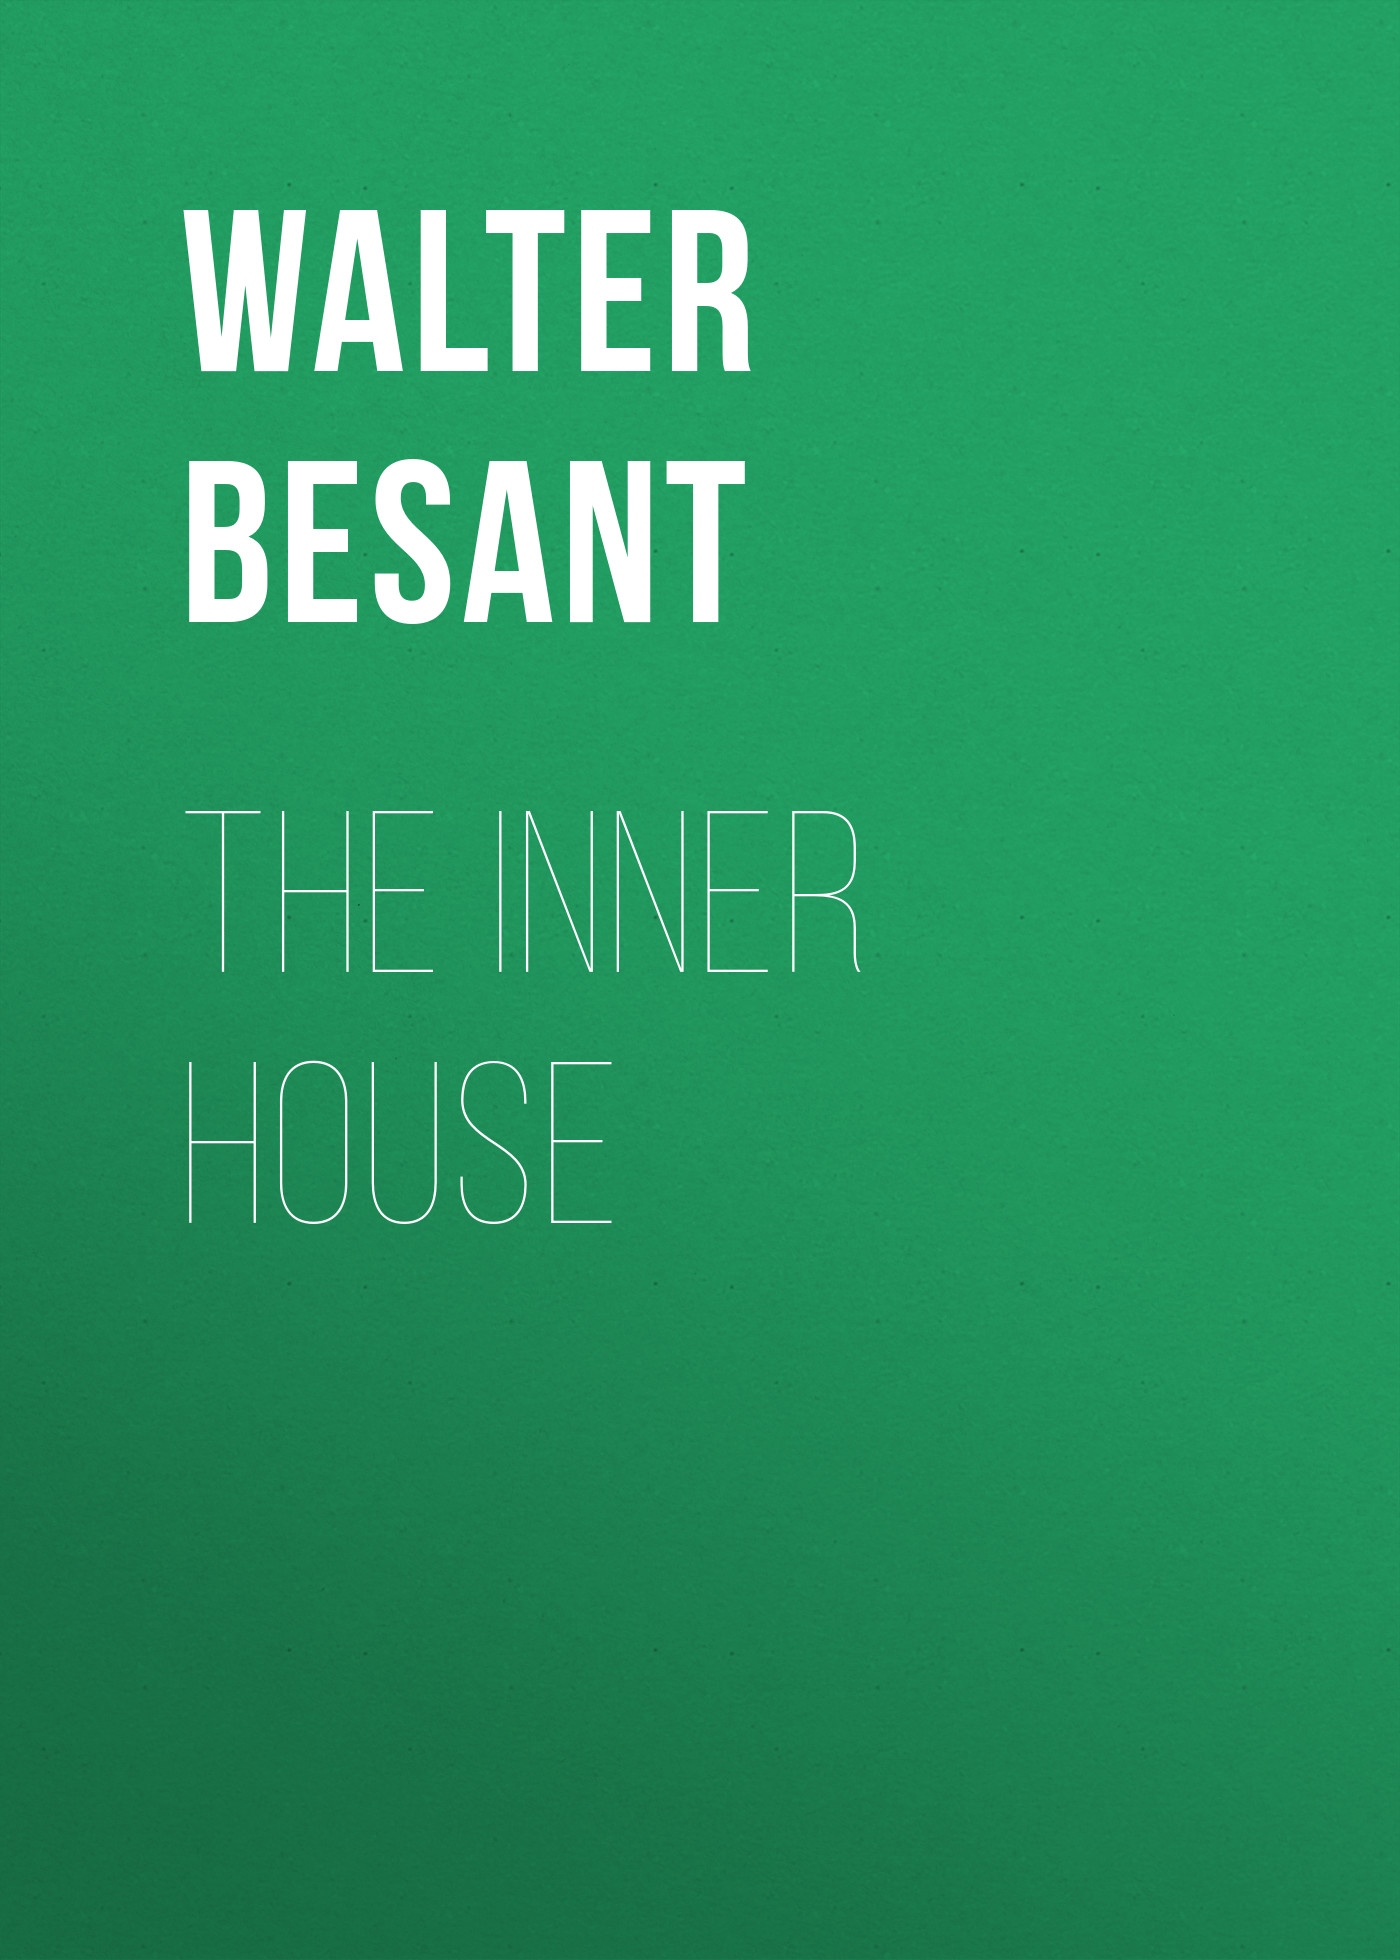 Walter Besant The inner house walter besant for faith and freedom